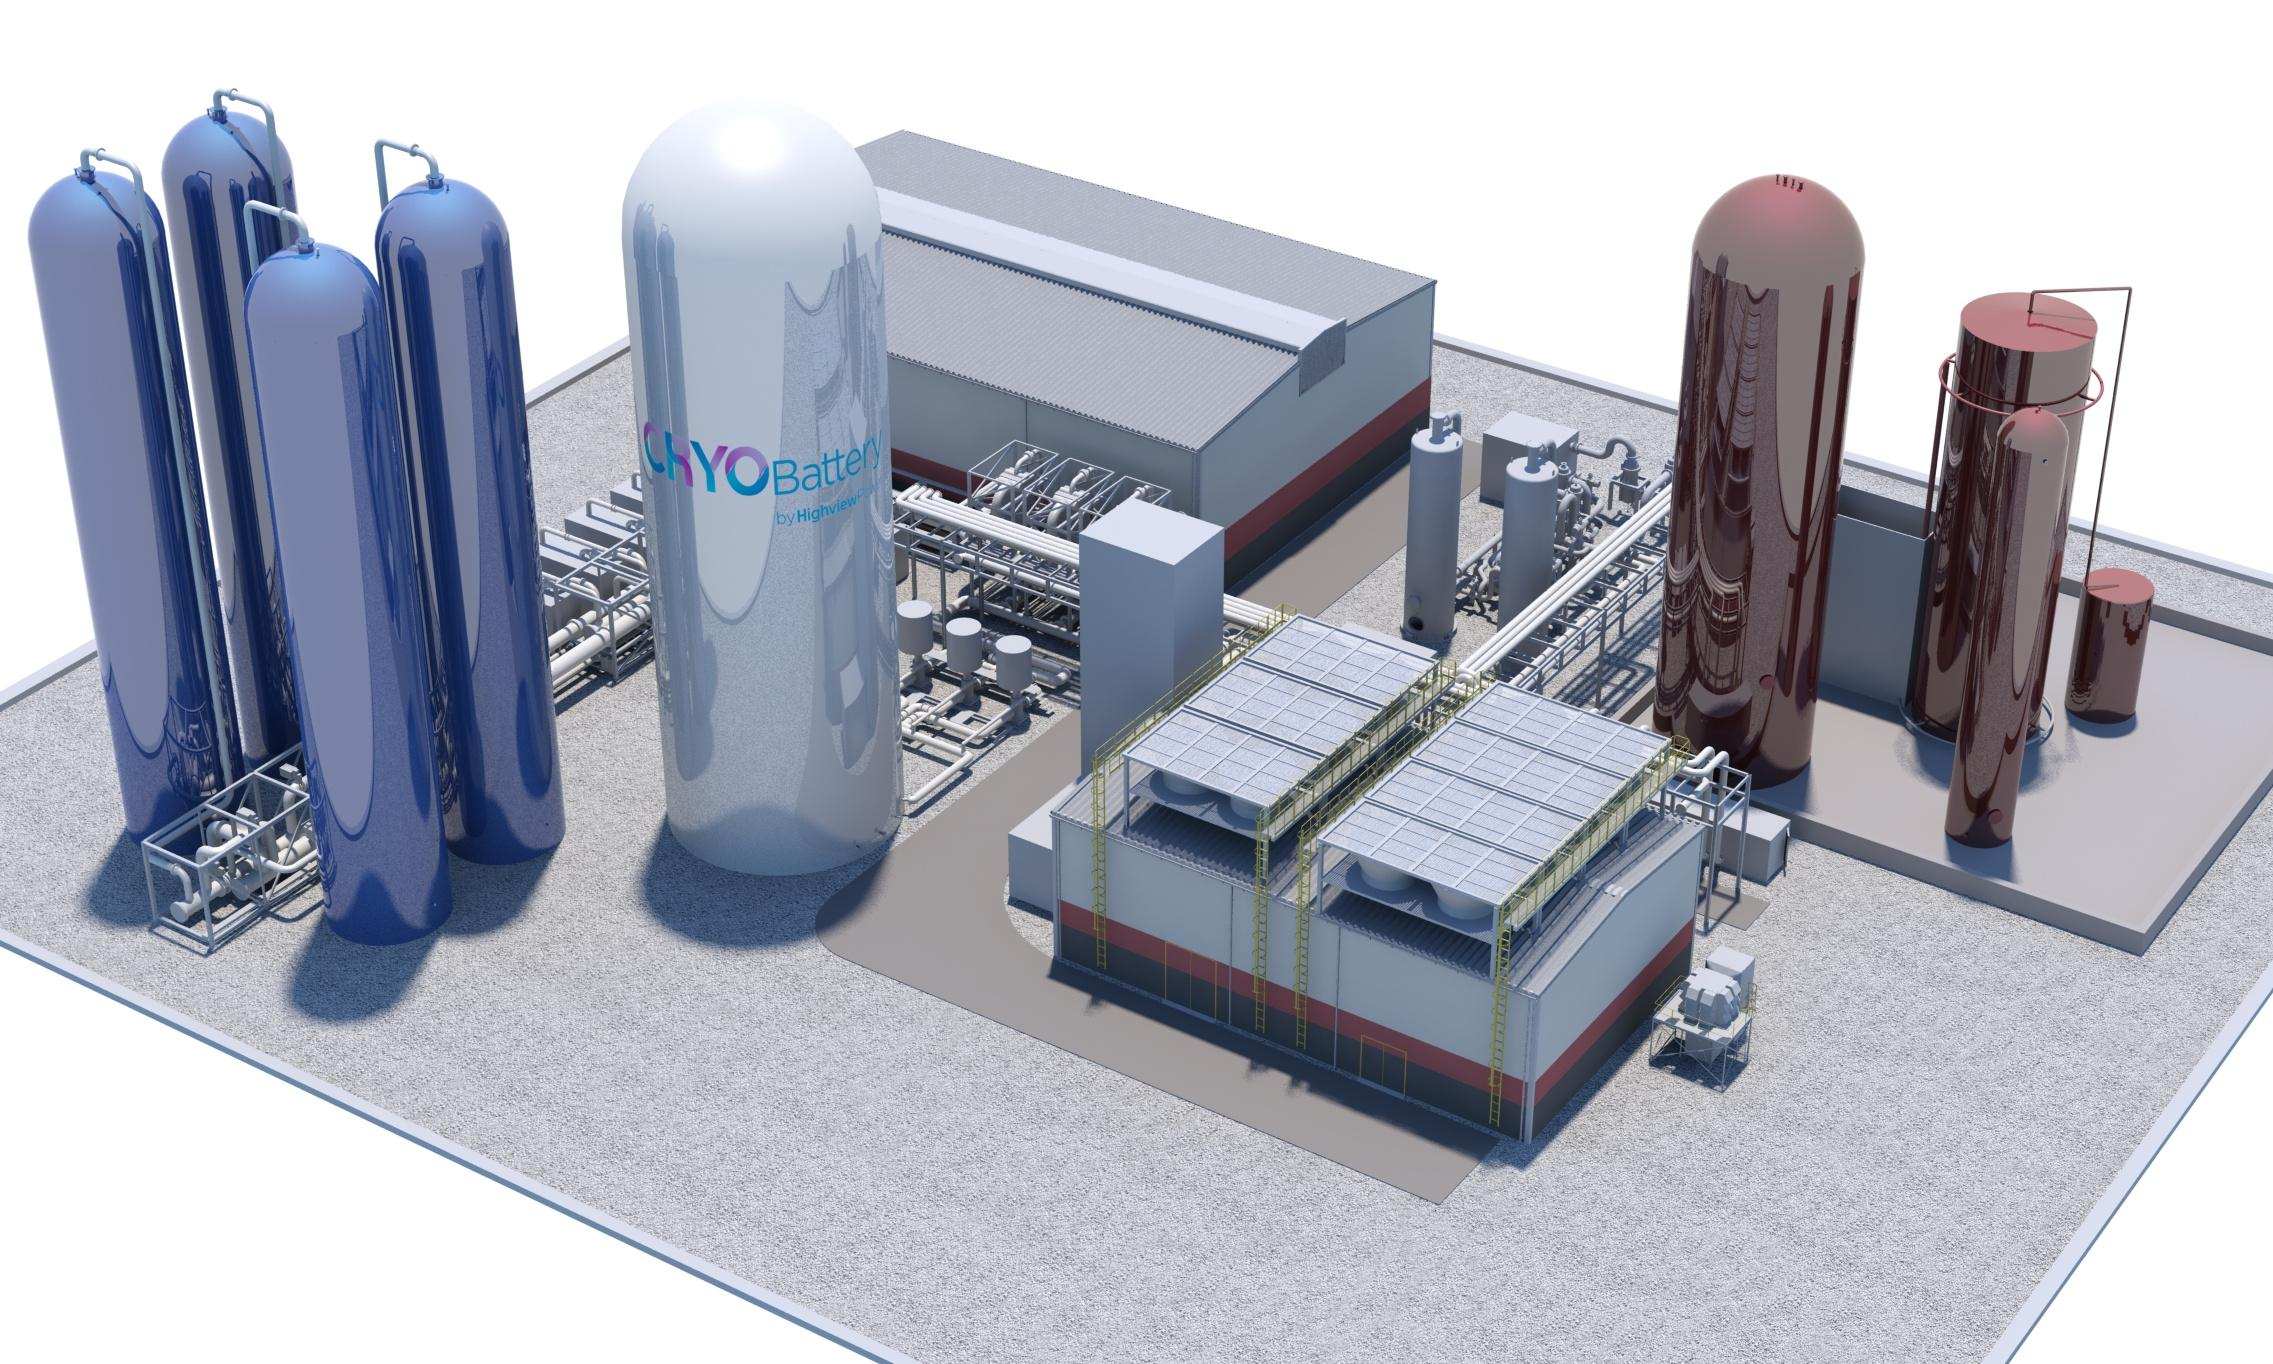 UK firm announces plans for first 'liquid to gas' cryogenic battery